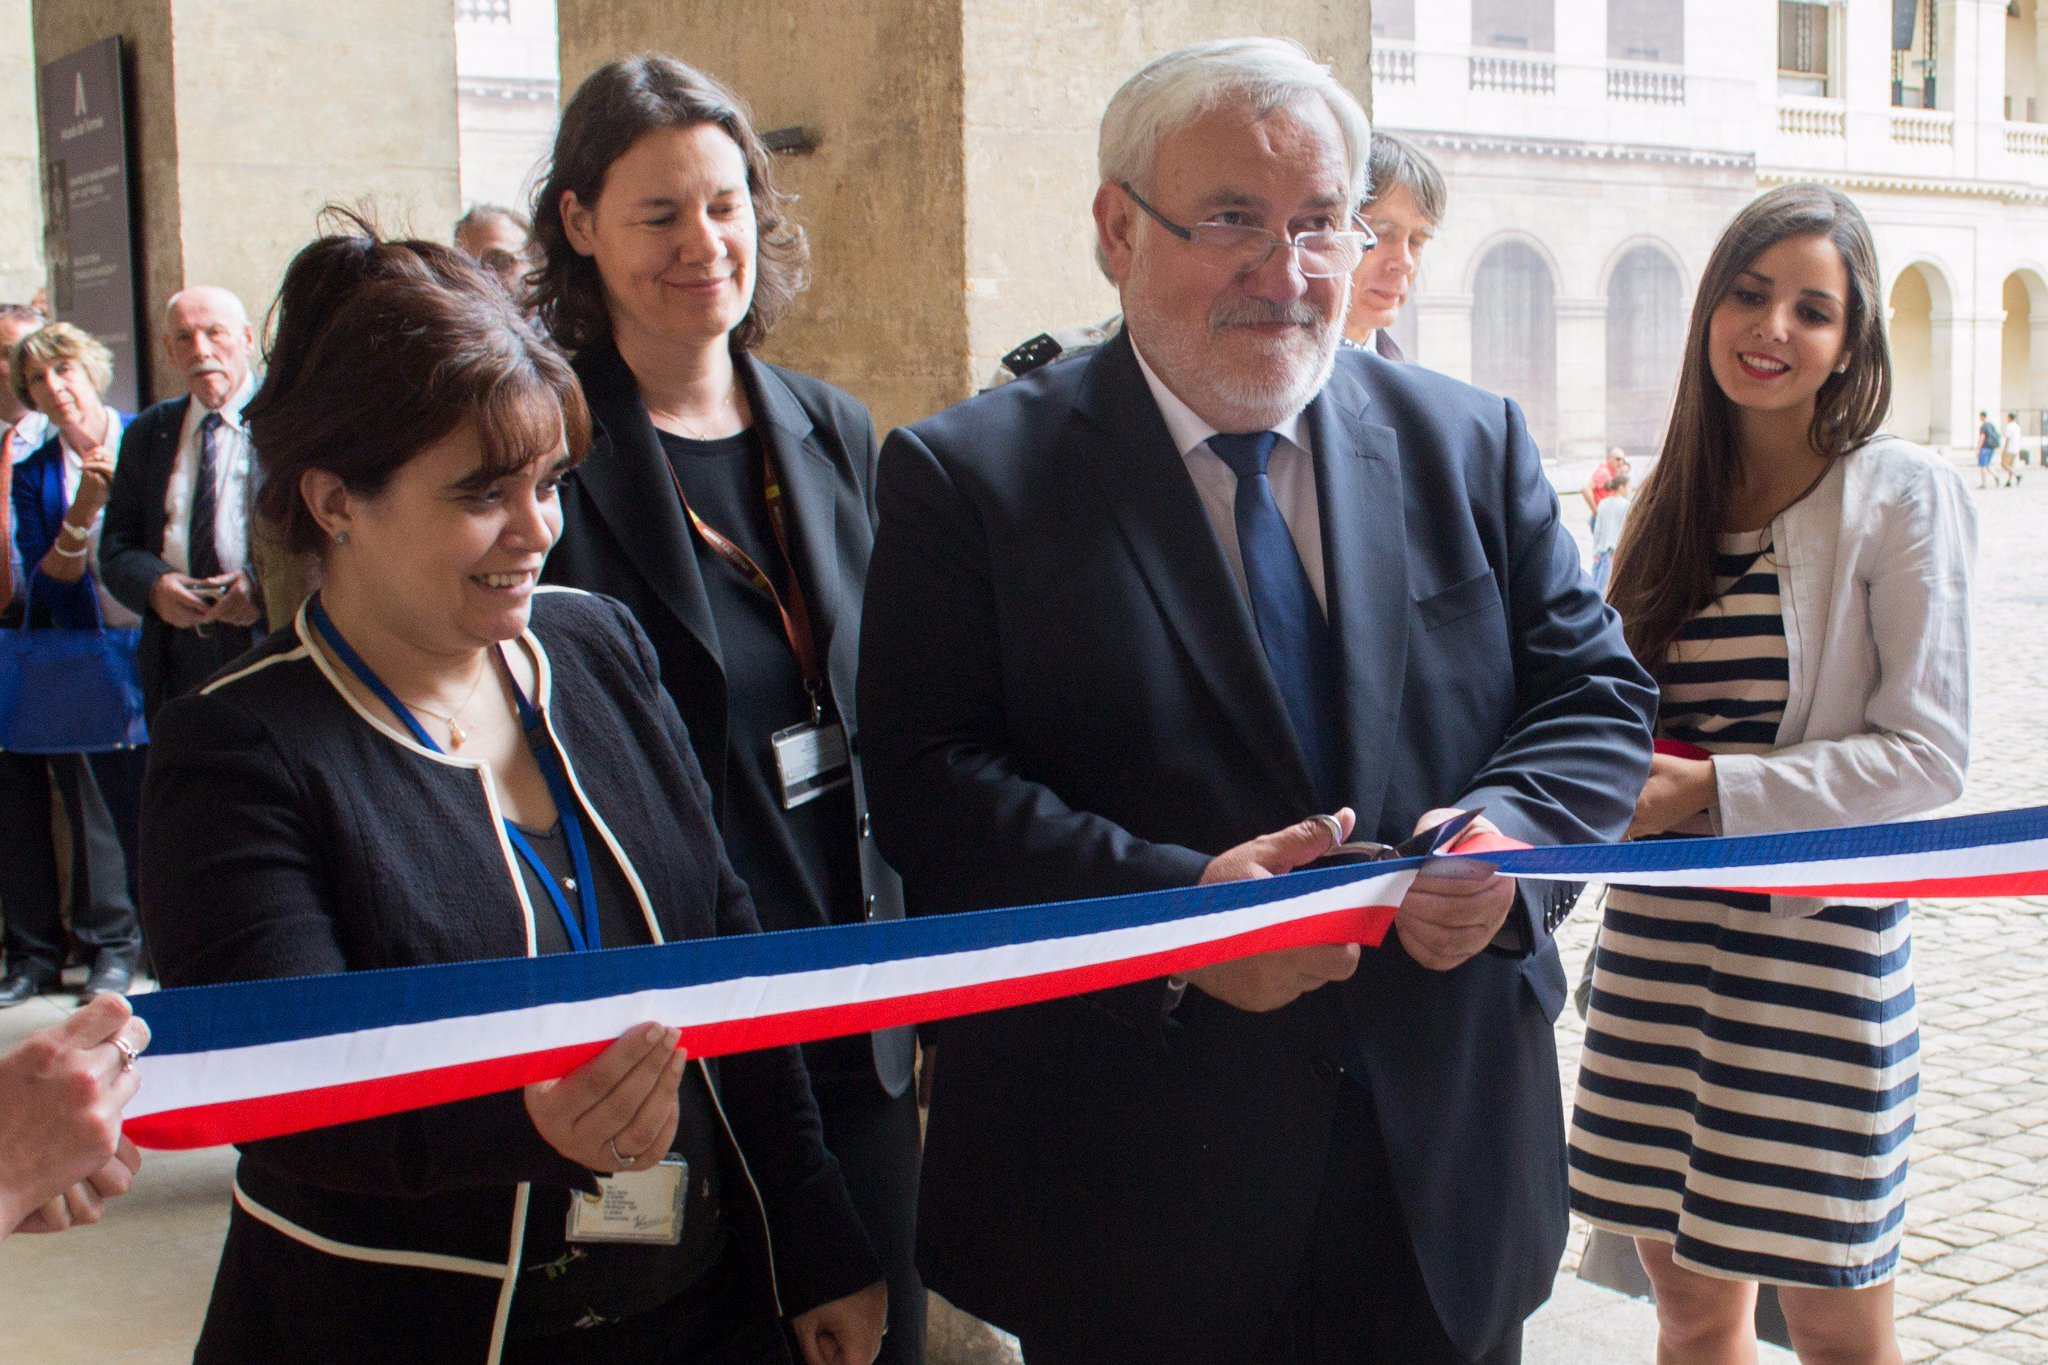 "Inauguration et visite de l'<a href=""https://twitter.com/search?q=expo&src=typd"" target=""_blank"">#expo</a> ""Rouget de Lisle et La <a href=""https://twitter.com/search?q=Marseillaise&src=typd"" target=""_blank"">#Marseillaise</a>"" en présence du SEDAC <a href=""https://twitter.com/JM_Todeschini"" target=""_blank"">@JM_Todeschini</a> https://t.co/cr74GiuNBC"